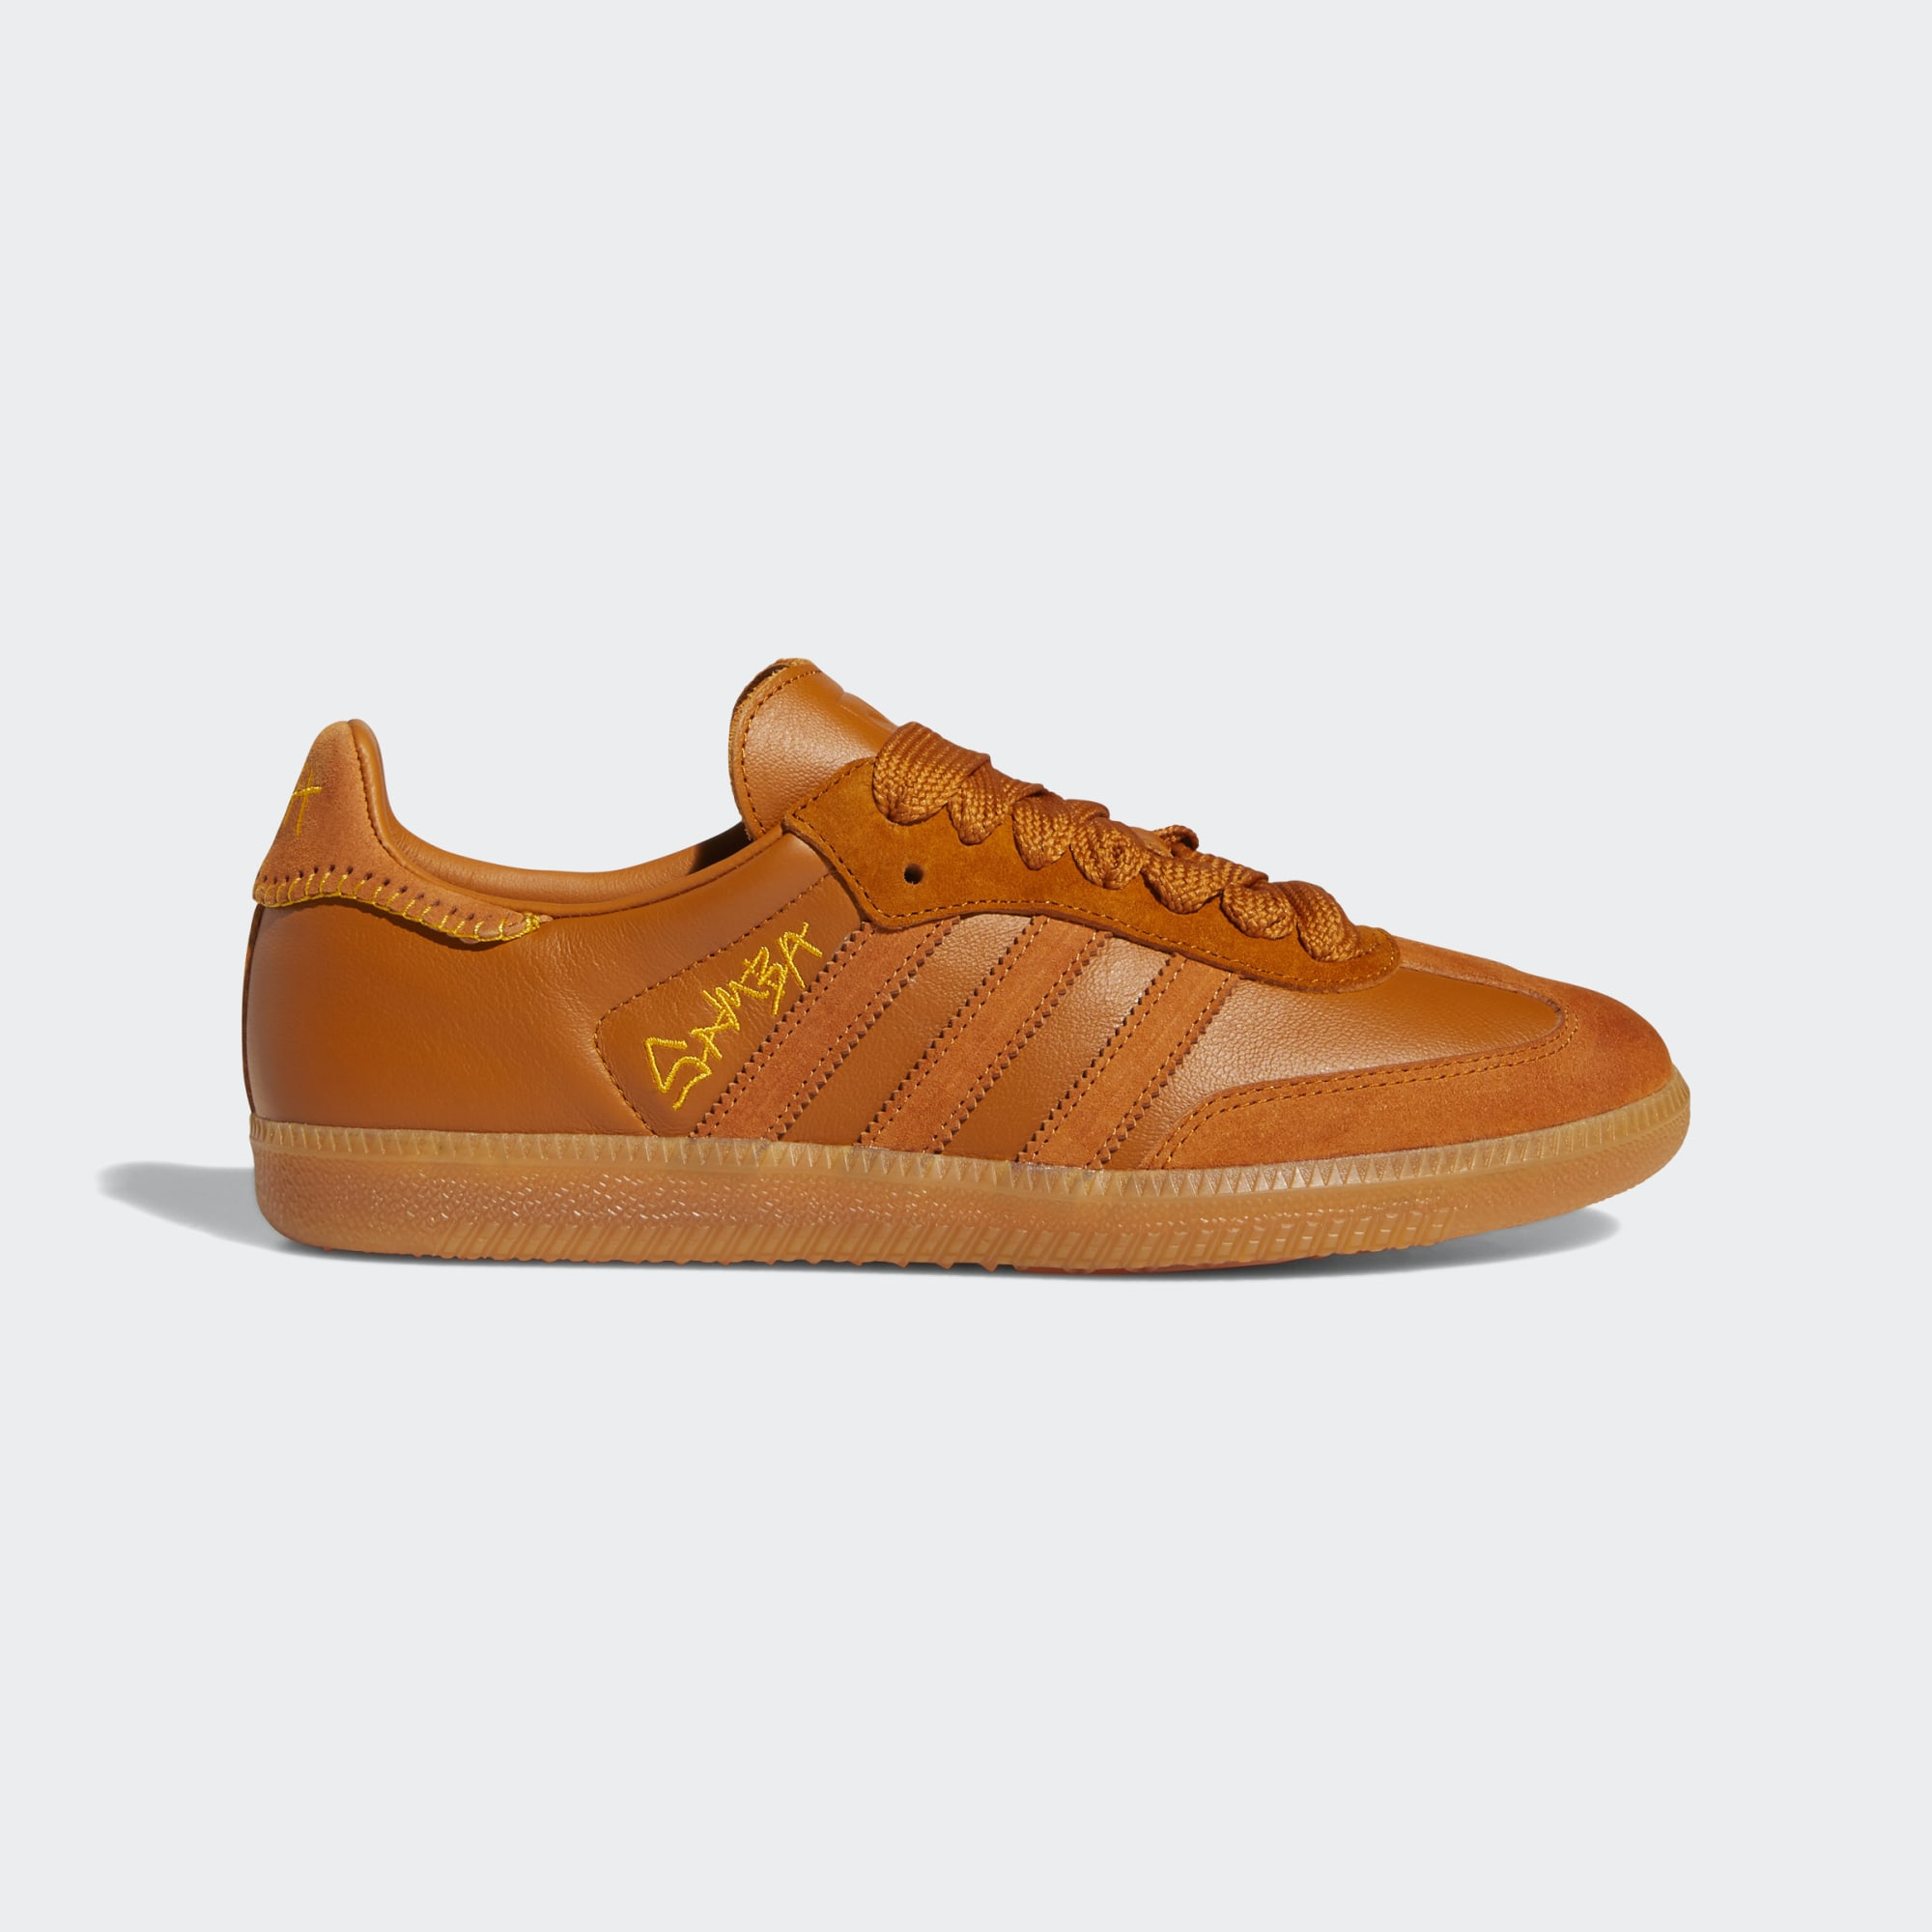 Jonah Hill x adidas Originals Samba 'Craft Ochre'}